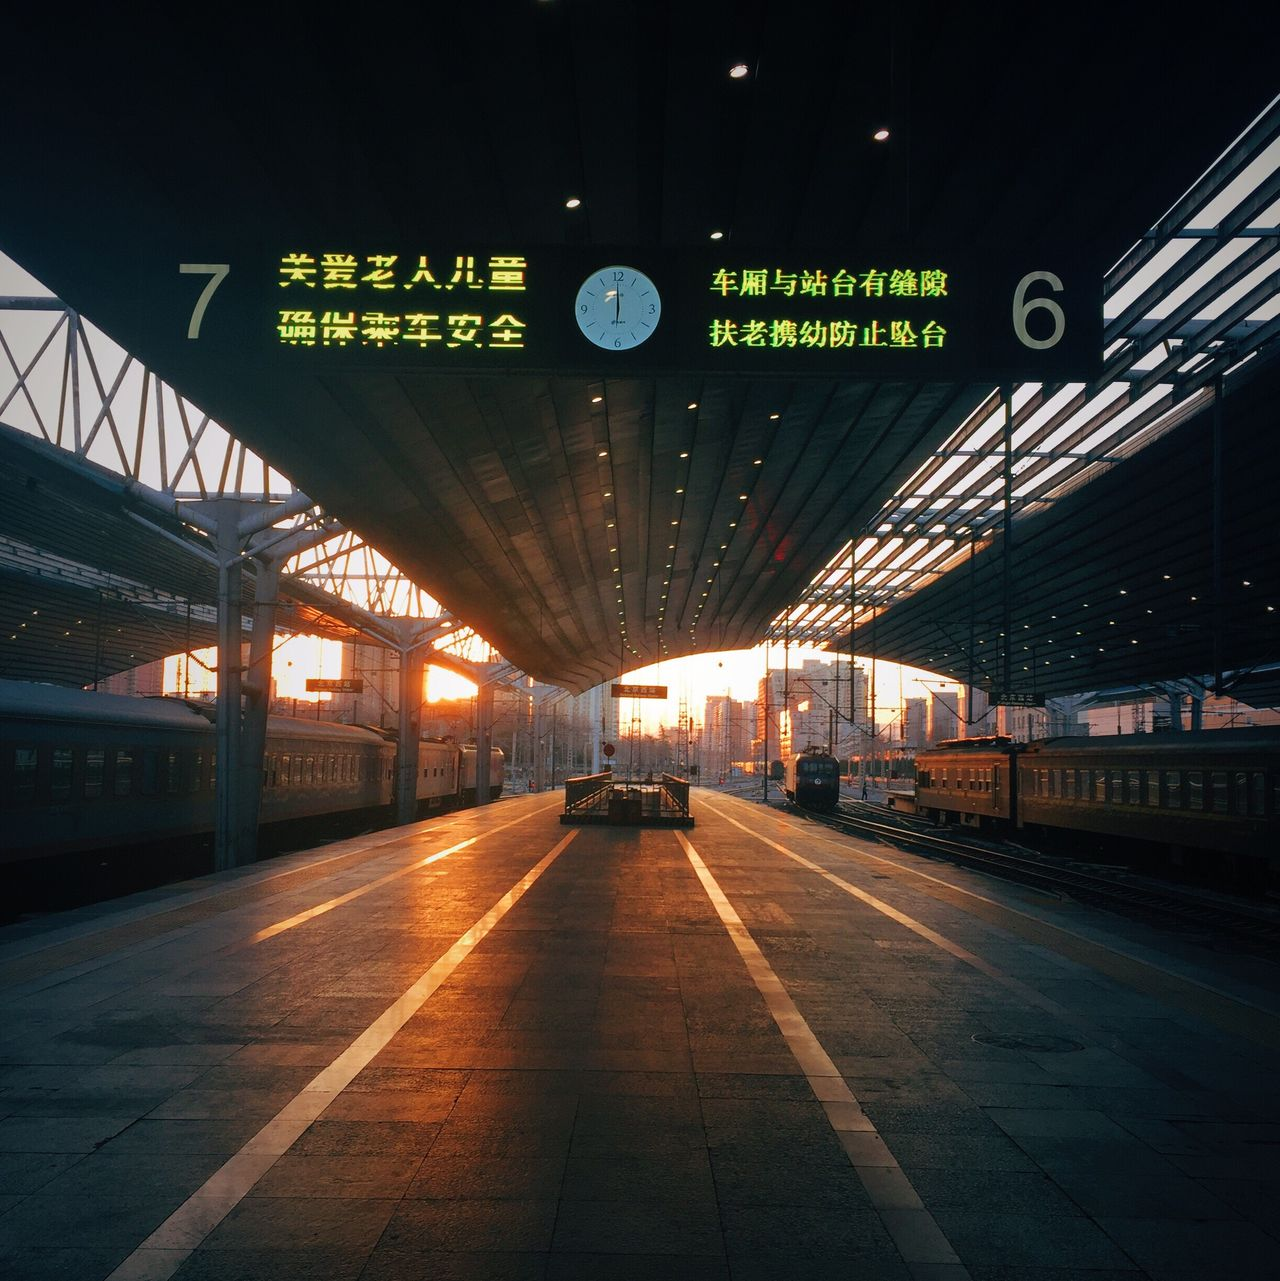 Sunset Railway Train Station China Photos Railway Station